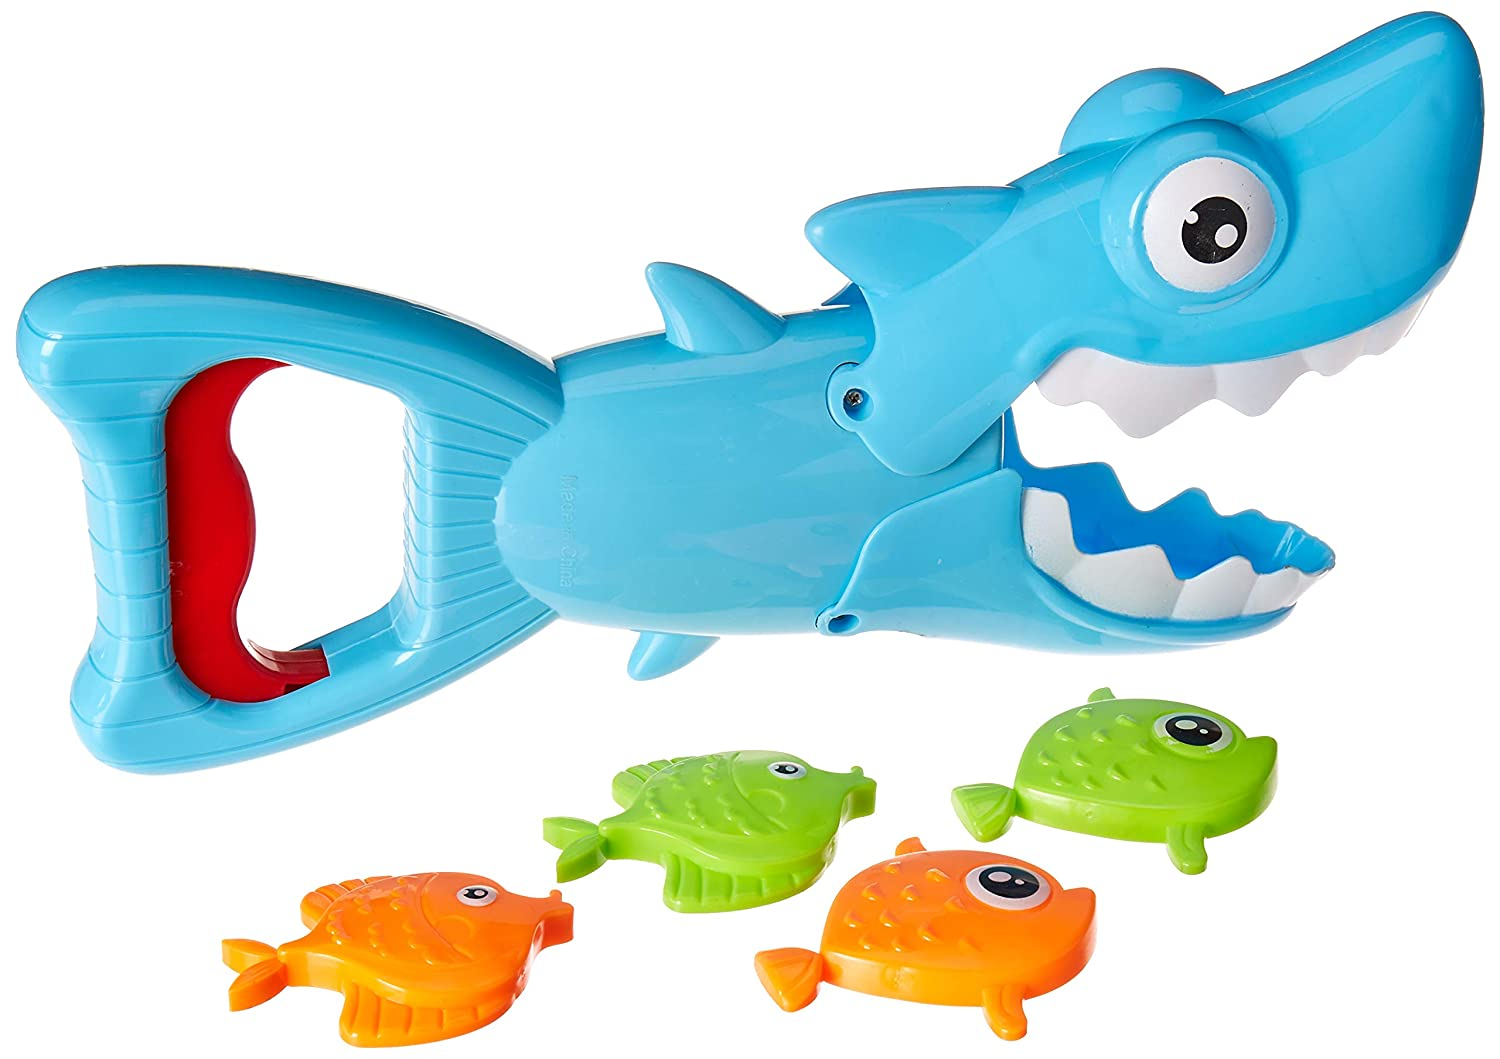 Squeeze Red Trigger to Open Mouth of Shark and Grab The Fish Shark Bath Toys for Toddlers Shark Grabber Includes 4 Sinking Fish Baby Bath Toy for Boys and Girls